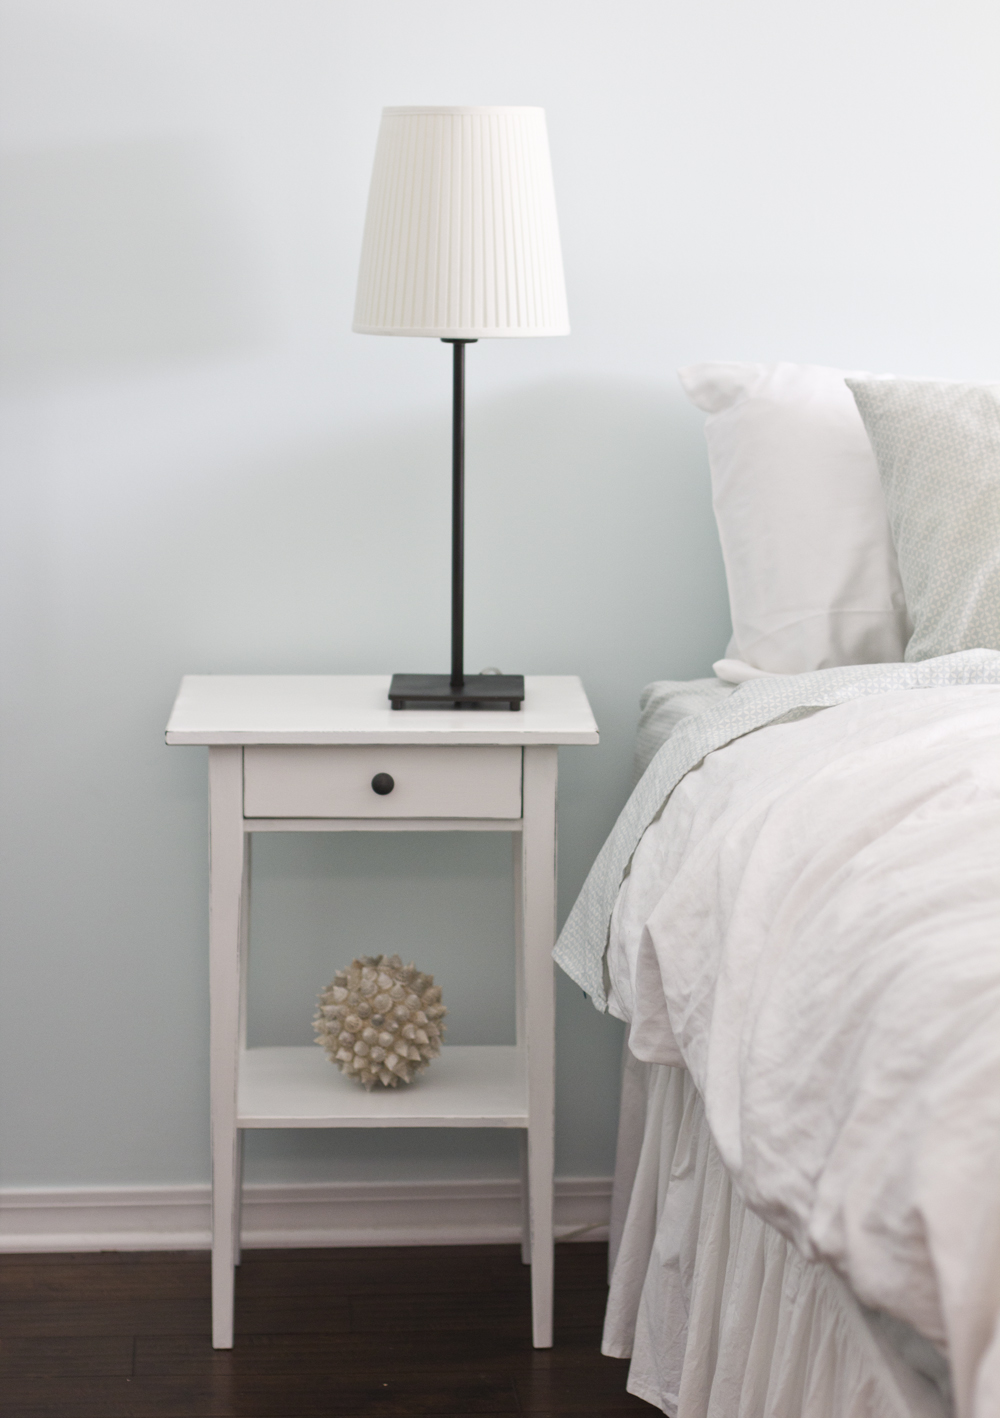 Ikea Nightstand Lamp Ikea Hemnes Nightstand Hack - Amazing Kitchen Decorating Ideas